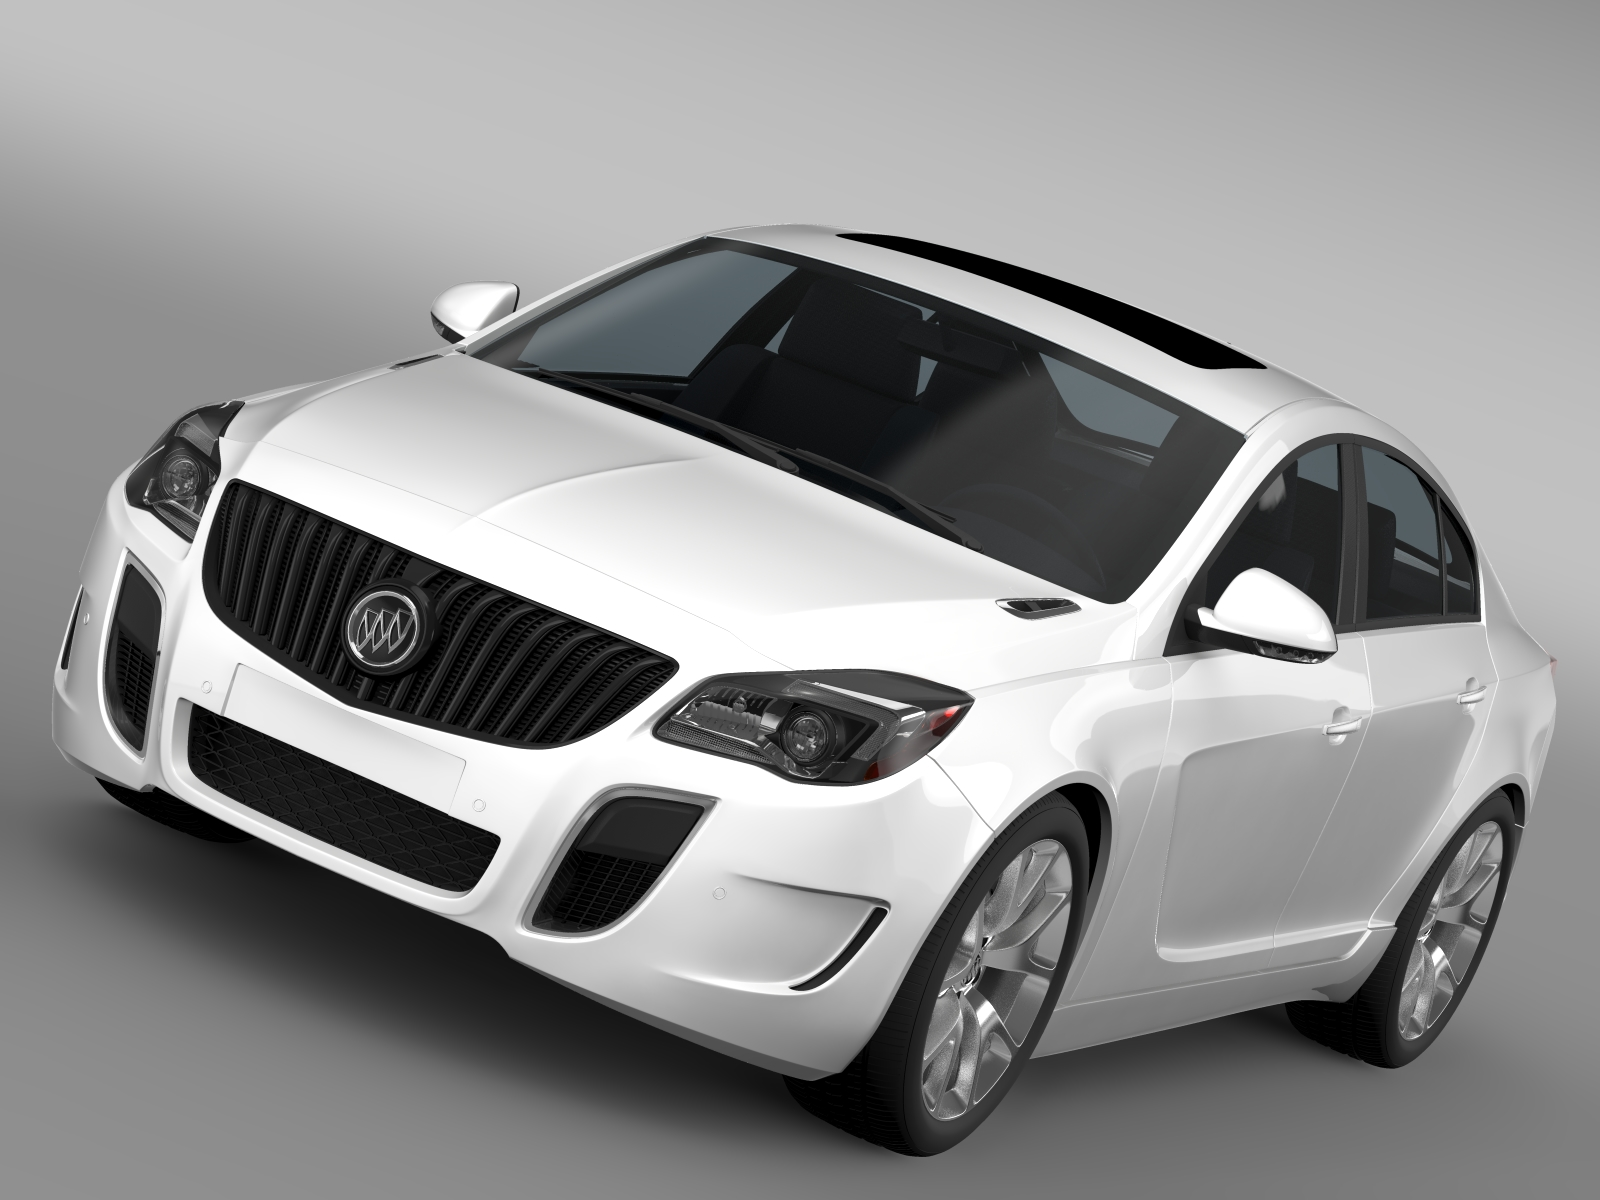 latest vehicles take it one buick kbb envision exterior news quick quiet more book the blue that all gets turbo competent kelley of with than car is quietly those powerful attention deserves launch comfortable